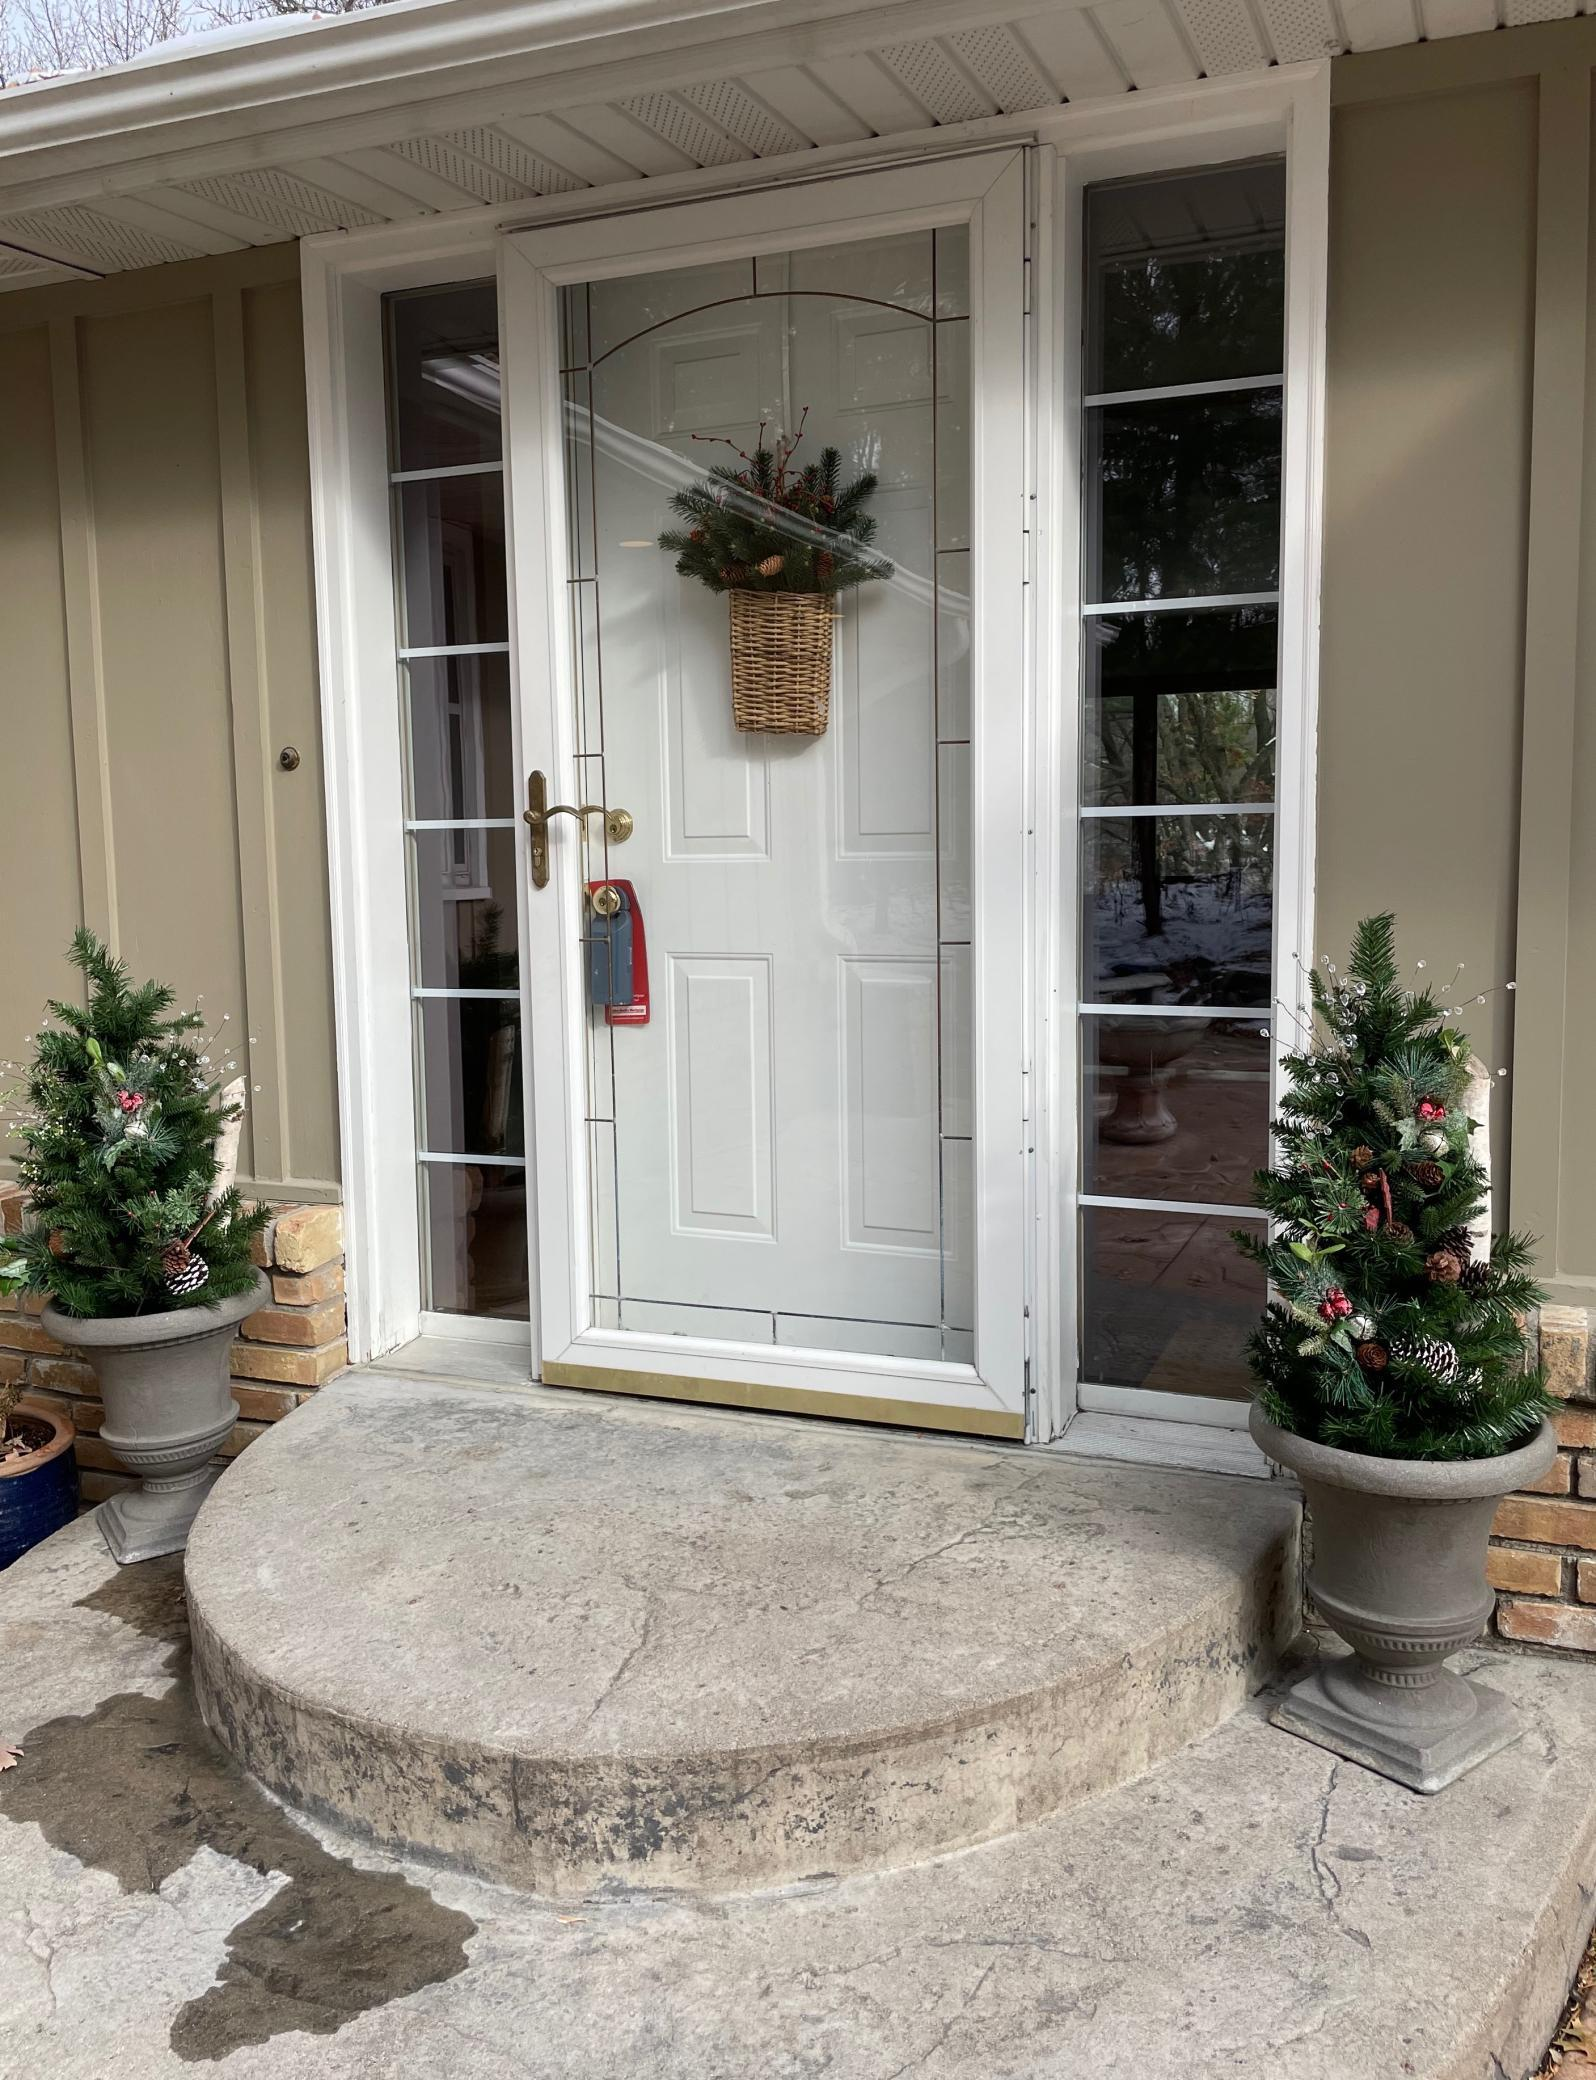 737 Amber Drive Property Photo - Shoreview, MN real estate listing